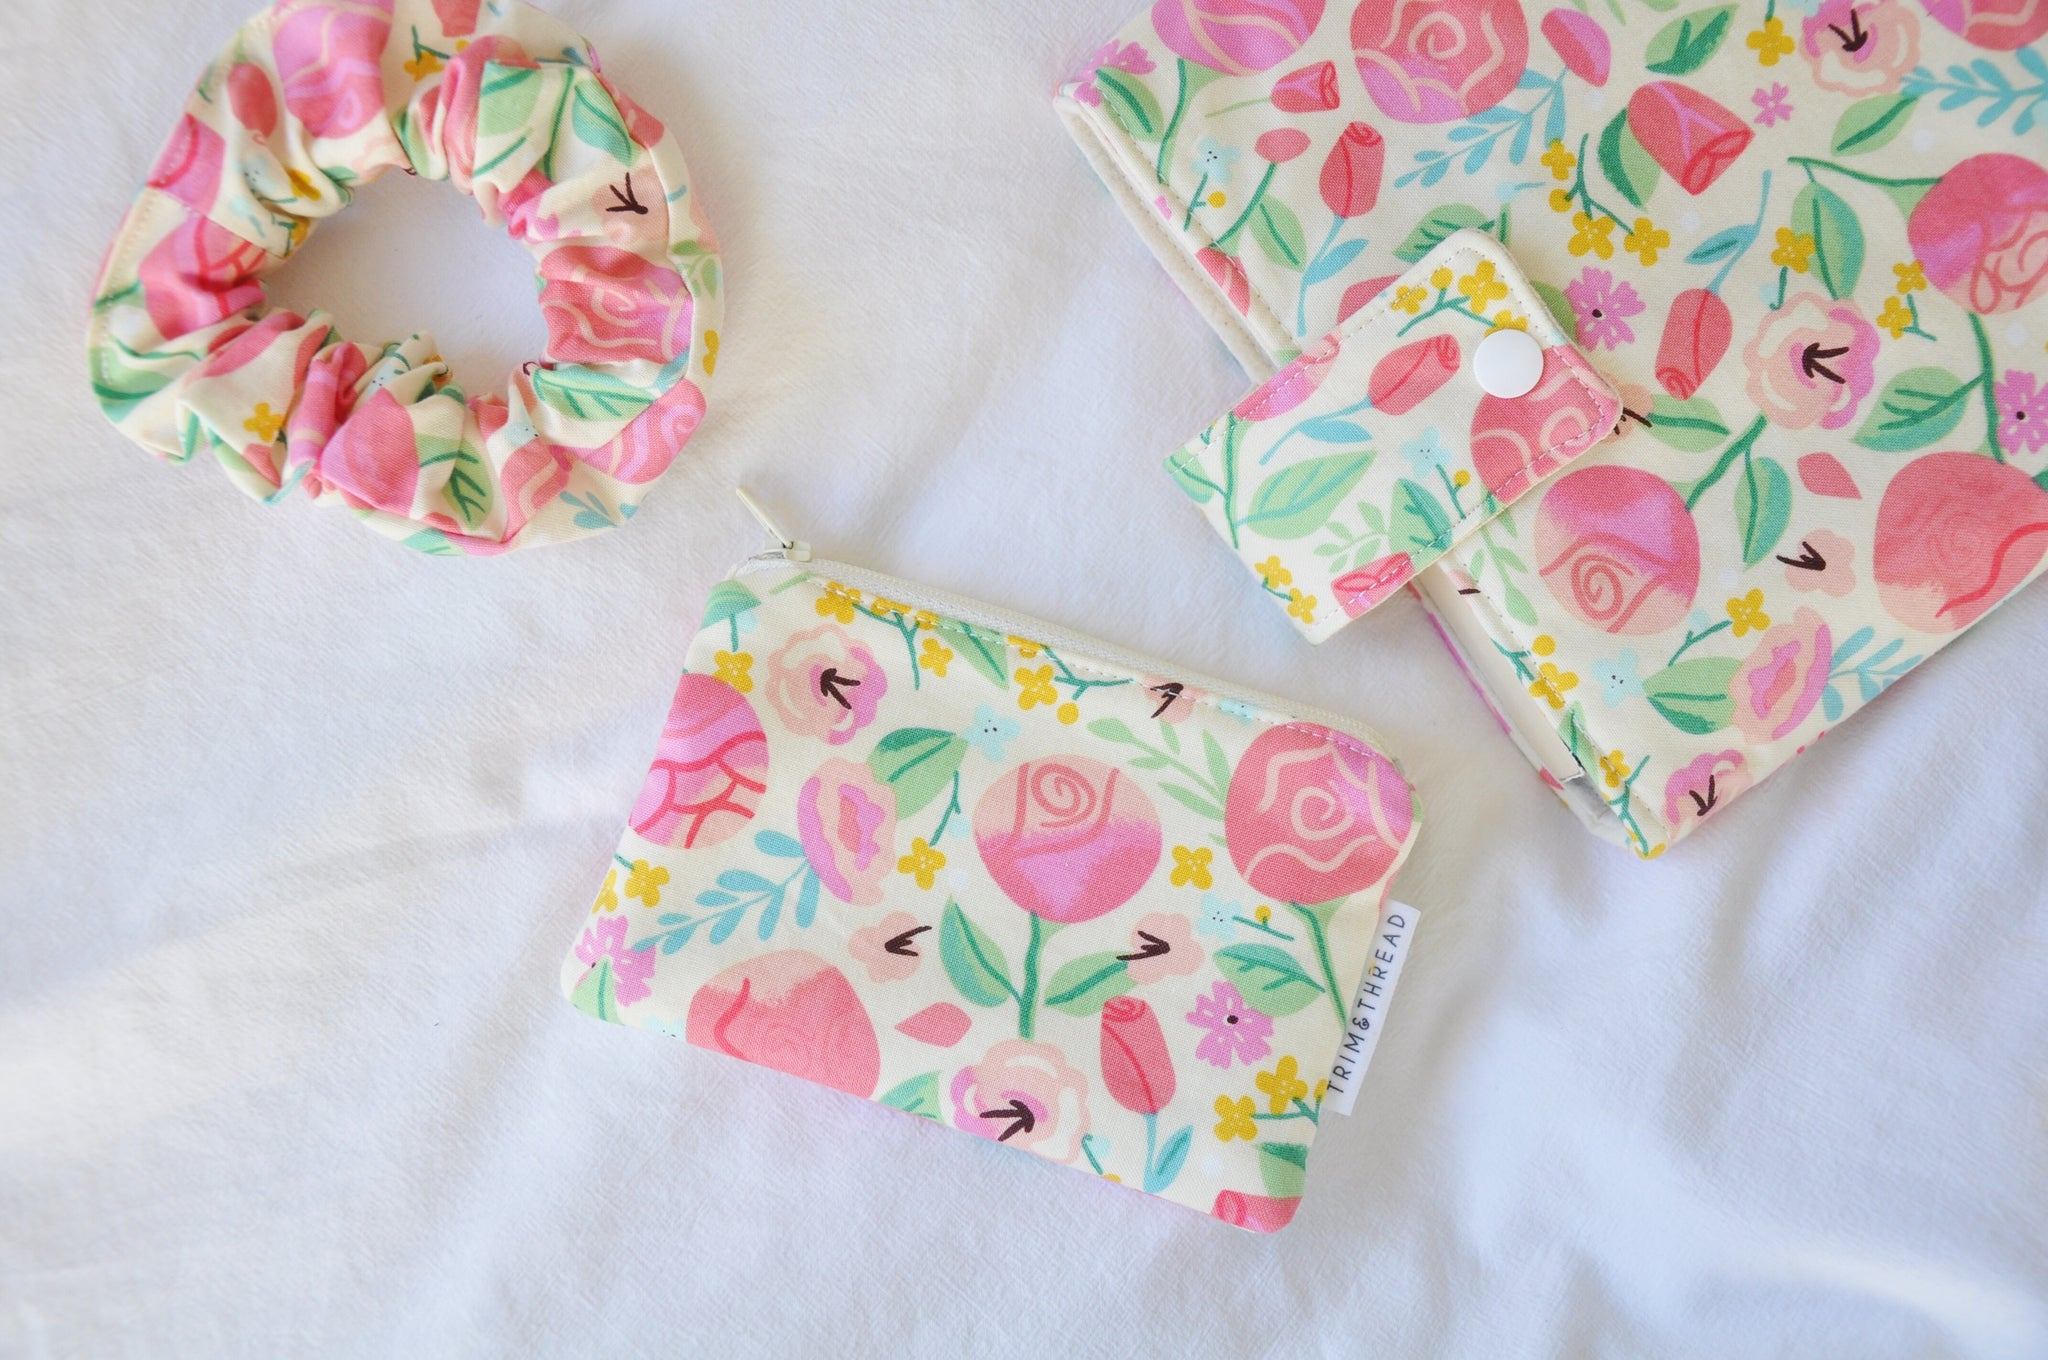 Rose Garden Cream Coin Pouch